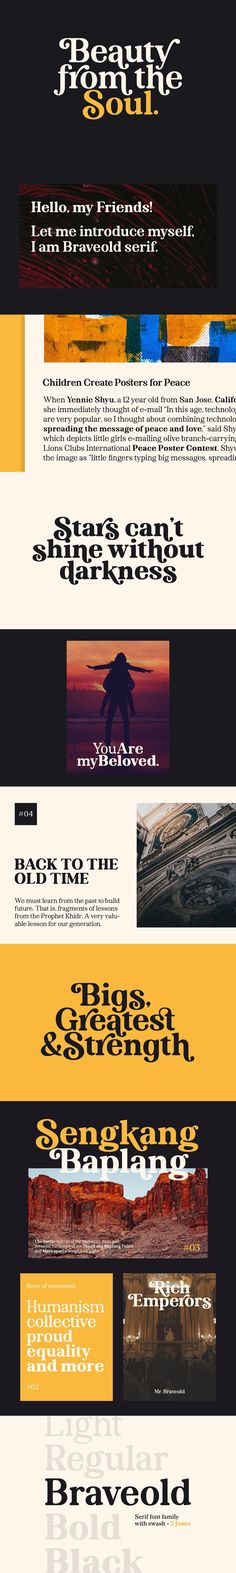 Braveold is a serif font family with swashes, making it multifunctional. It is inspired by classic and retro fonts in the 70 and comes with 5 weights which can Best Serif Fonts, Retro Font, Uppercase And Lowercase, Font Family, Graphic Design, Multifunctional, Ninja